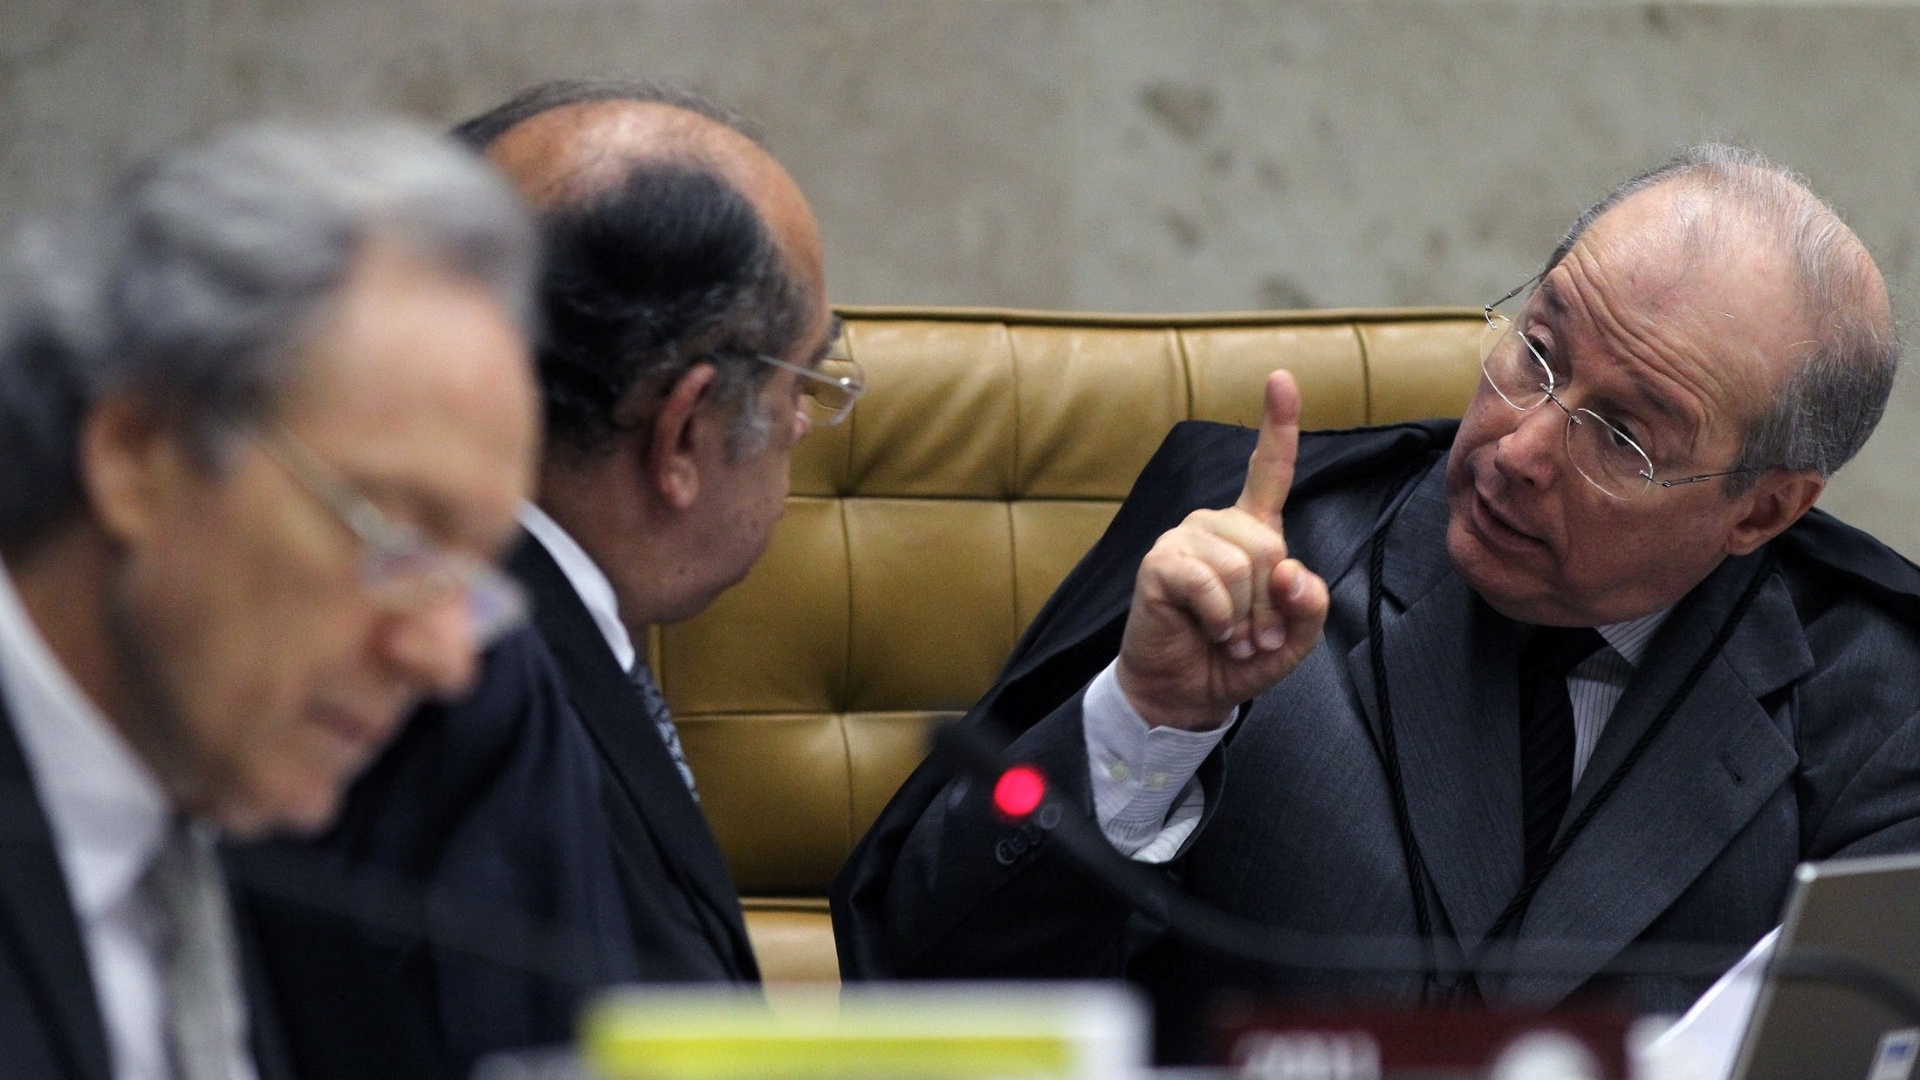 24.out.2012 - O ministro do STF Celso de Mello conversa com Gilmar Mendes durante o julgamente do mensalo. Celso de Mello sugeriu que a regra usada para absolver os rus das acusaes em que houve empate tambm deve ser aplicada nesta fase da dosimetria